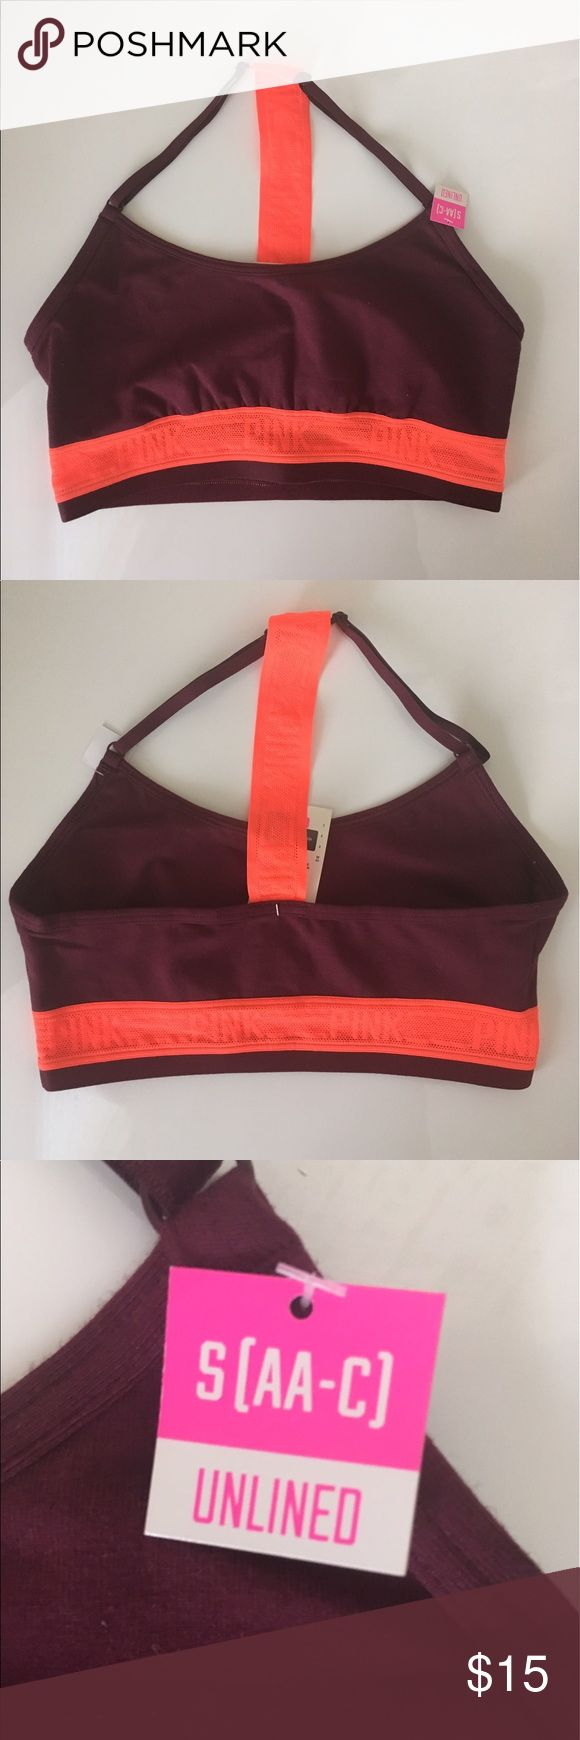 VS PINK sports bra VS PINK maroon and orange racerback sports bra! Super cute and great for working out! NWT PINK Victoria's Secret Intimates & Sleepwear Bras